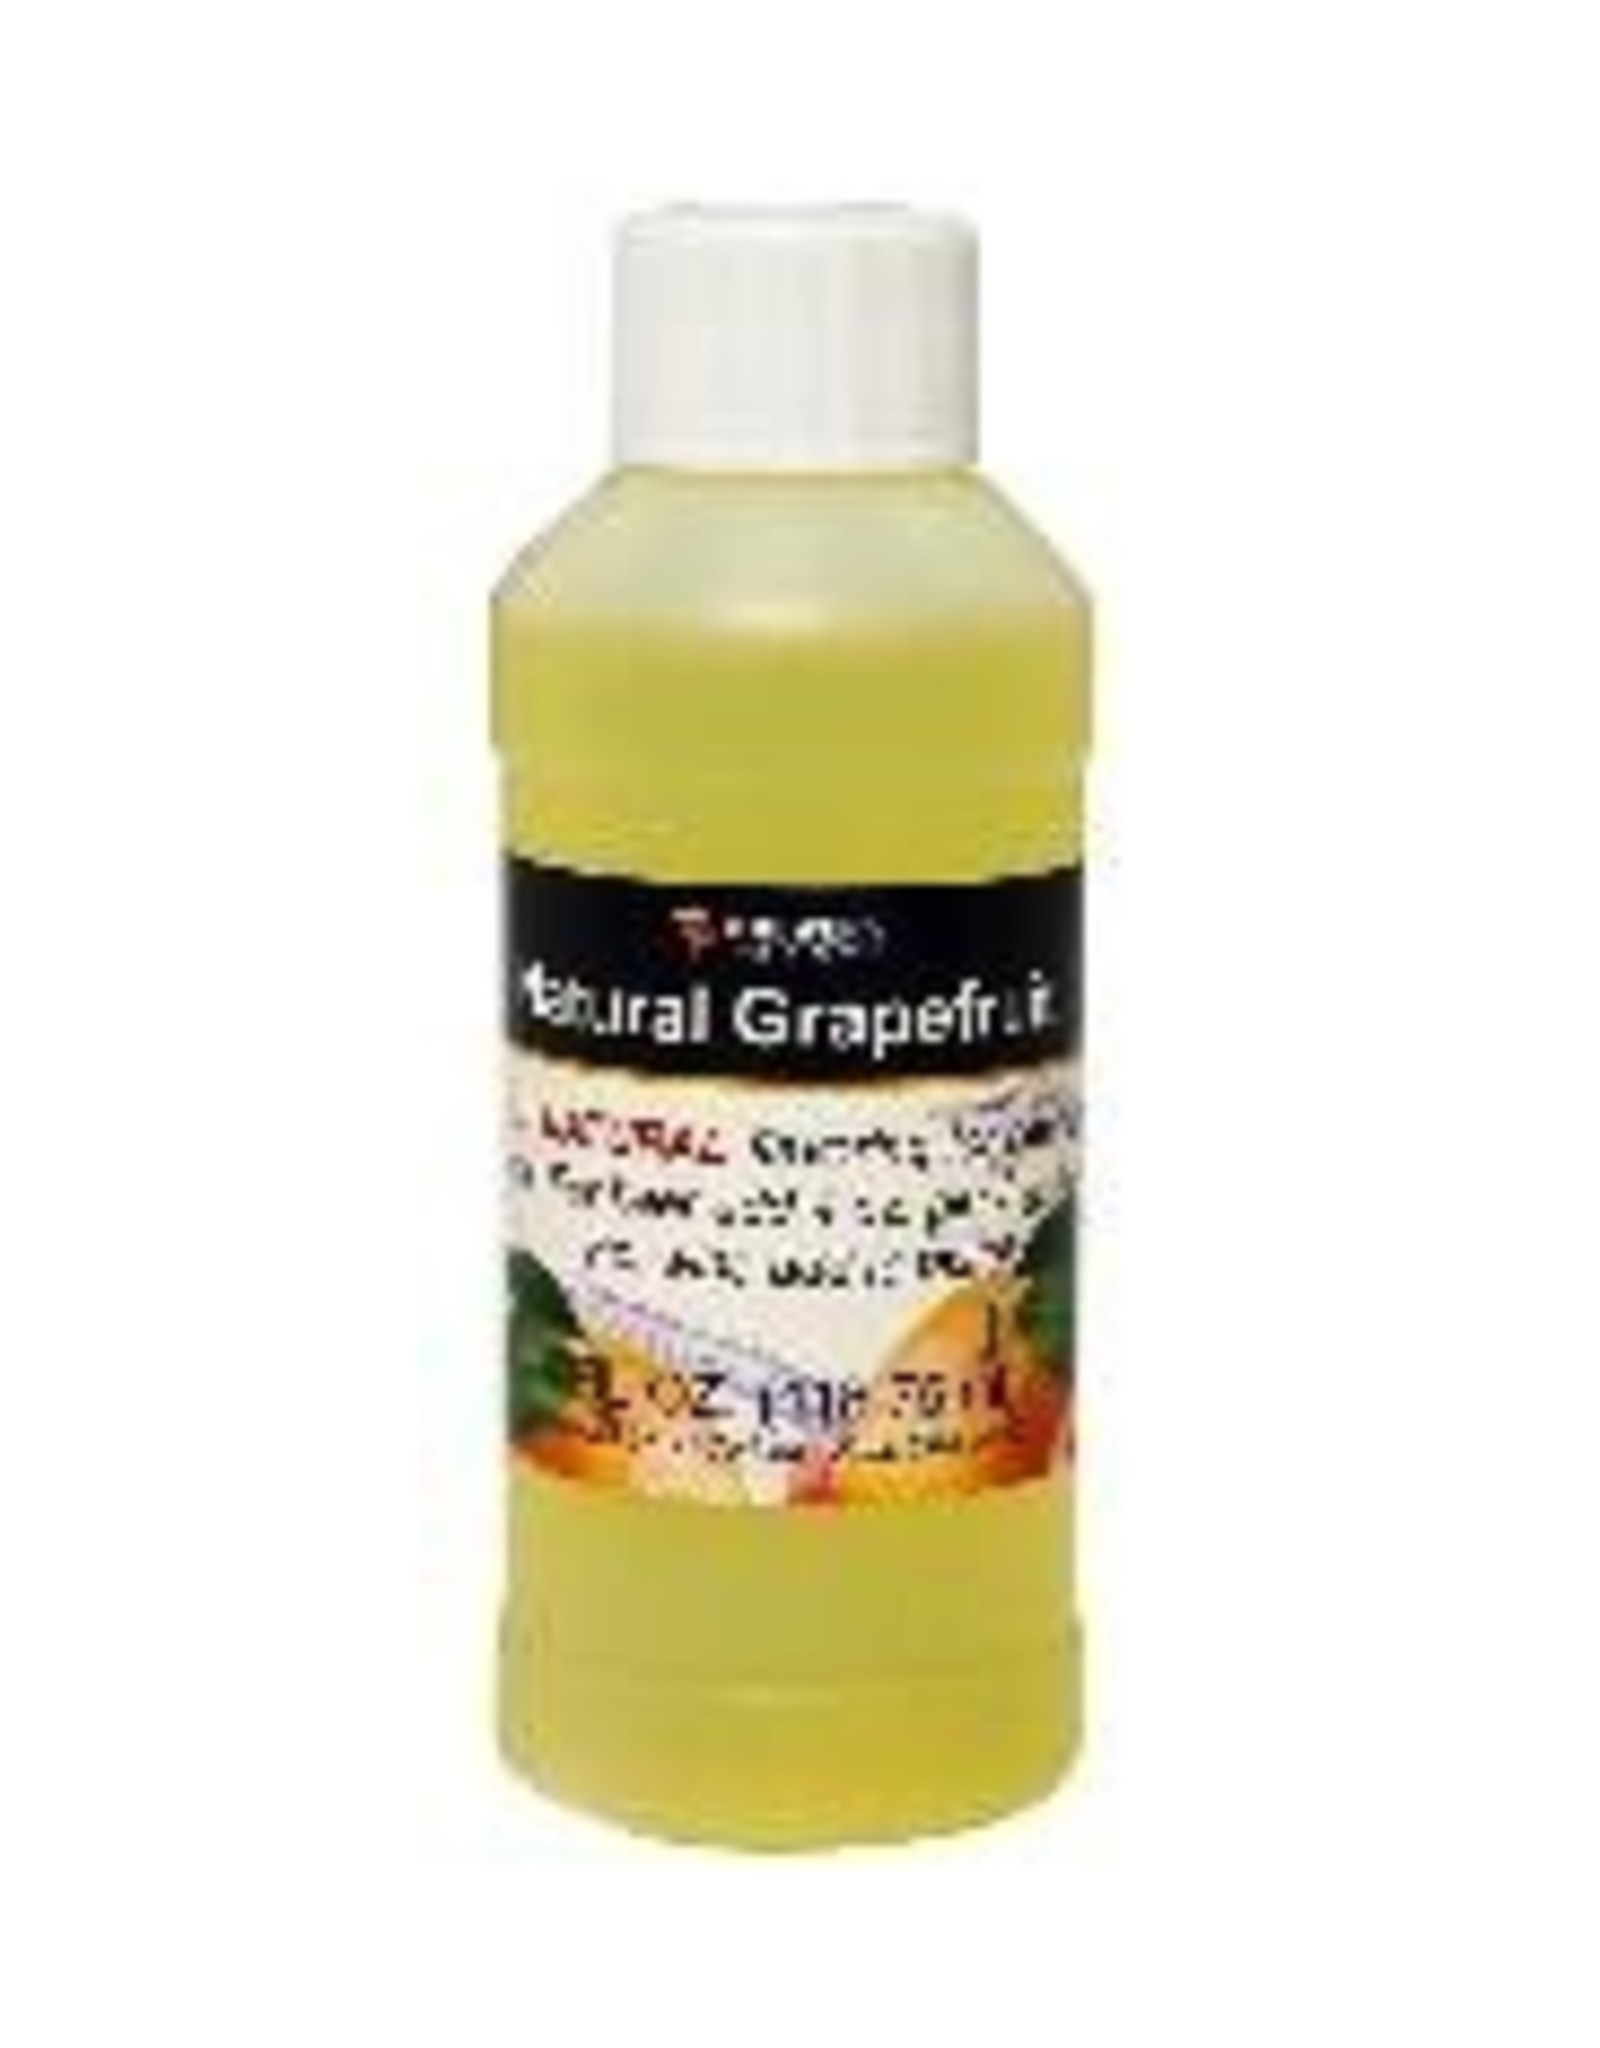 BREWERS BEST NATURAL GRAPEFRUIT FLAVORING EXTRACT 4 OZ